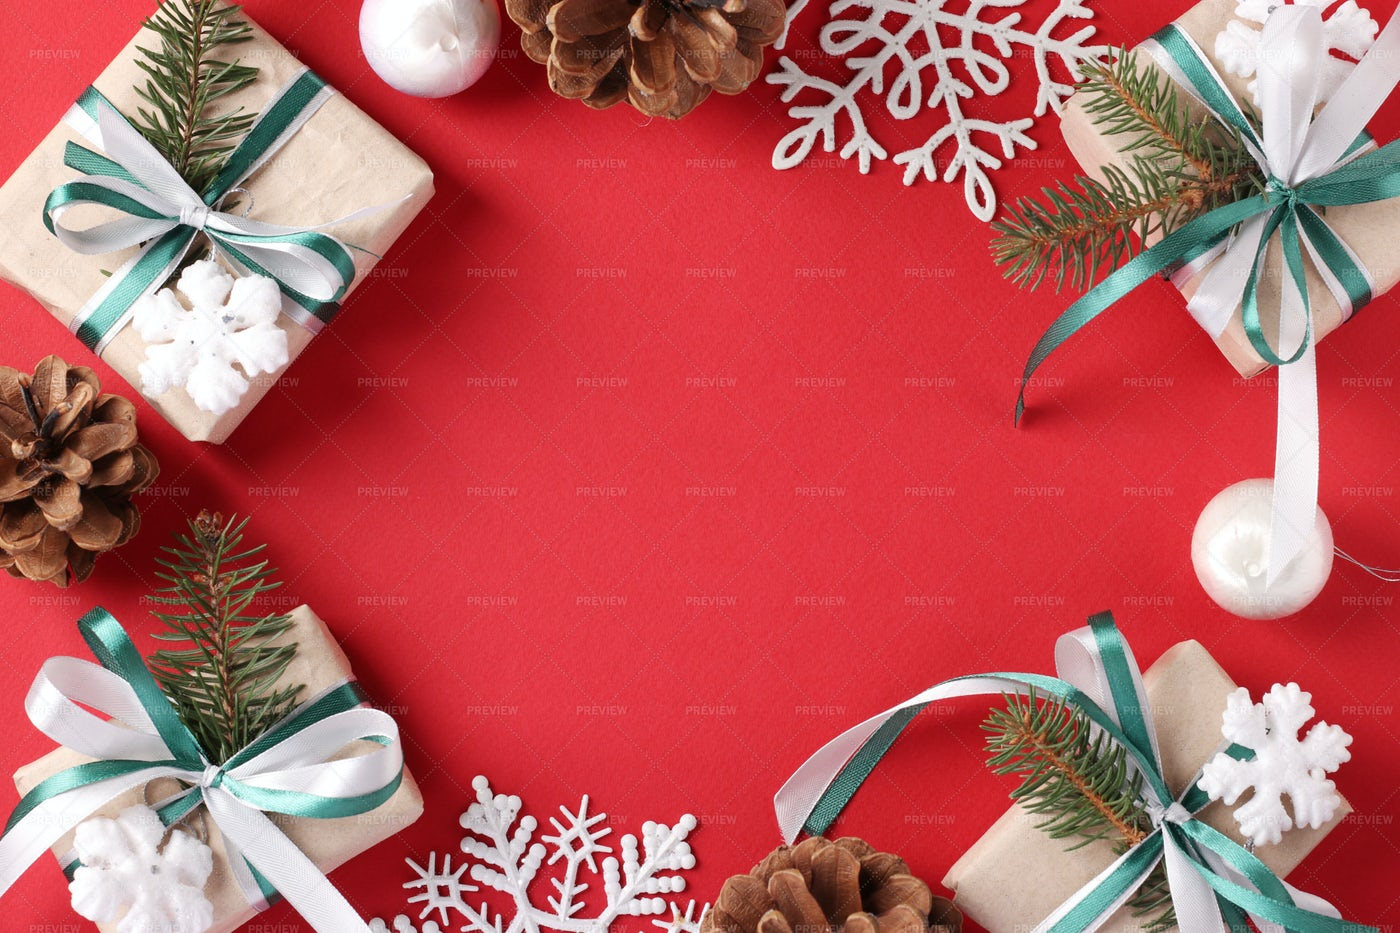 Christmas Frame With Gifts: Stock Photos